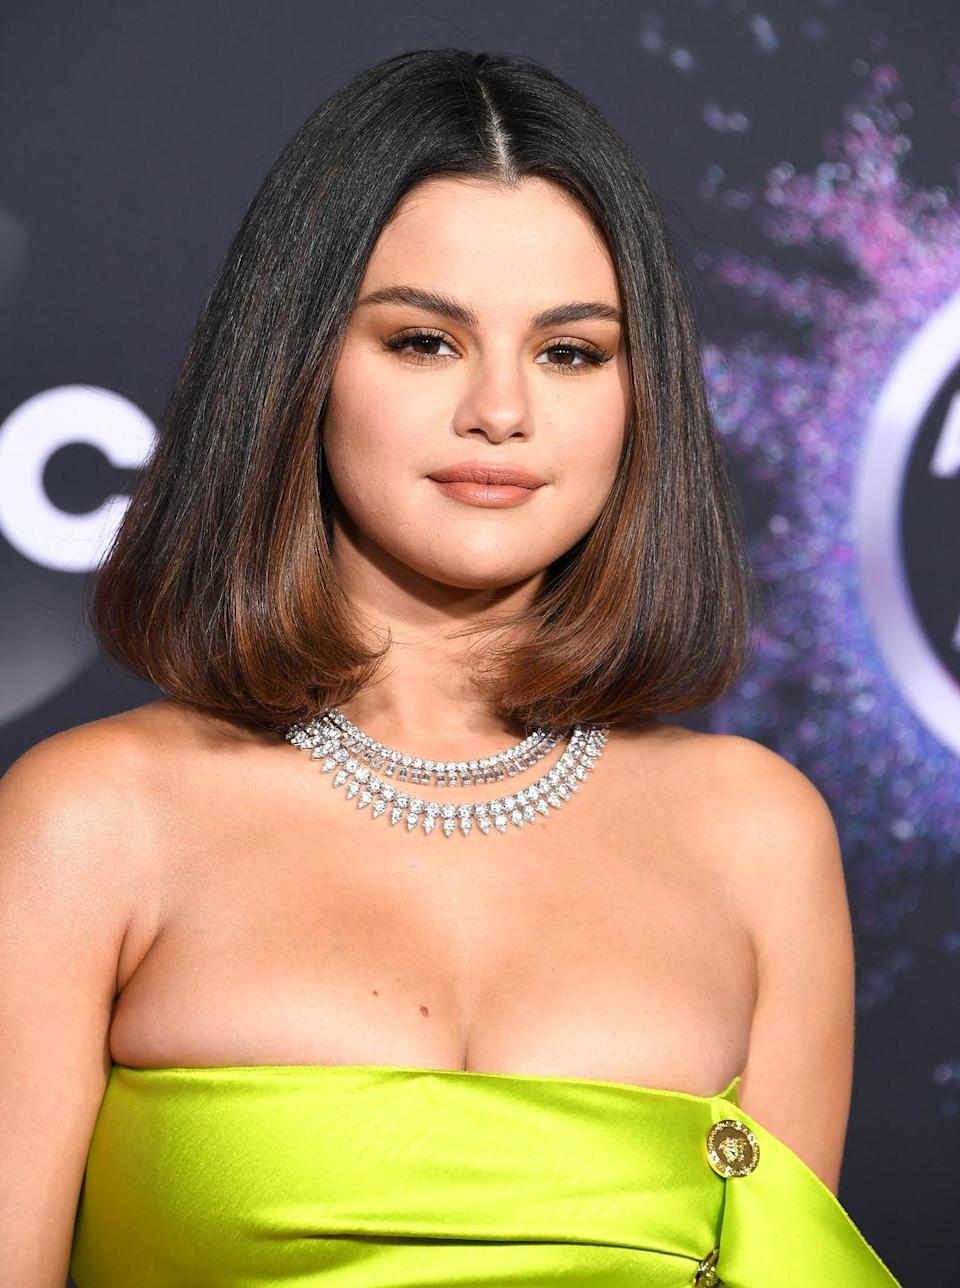 <p>It's official: brunettes have more fun. Just ask former blondes. Who doesn't want to trade golden locks for rich and shiny chocolate tresses?</p>